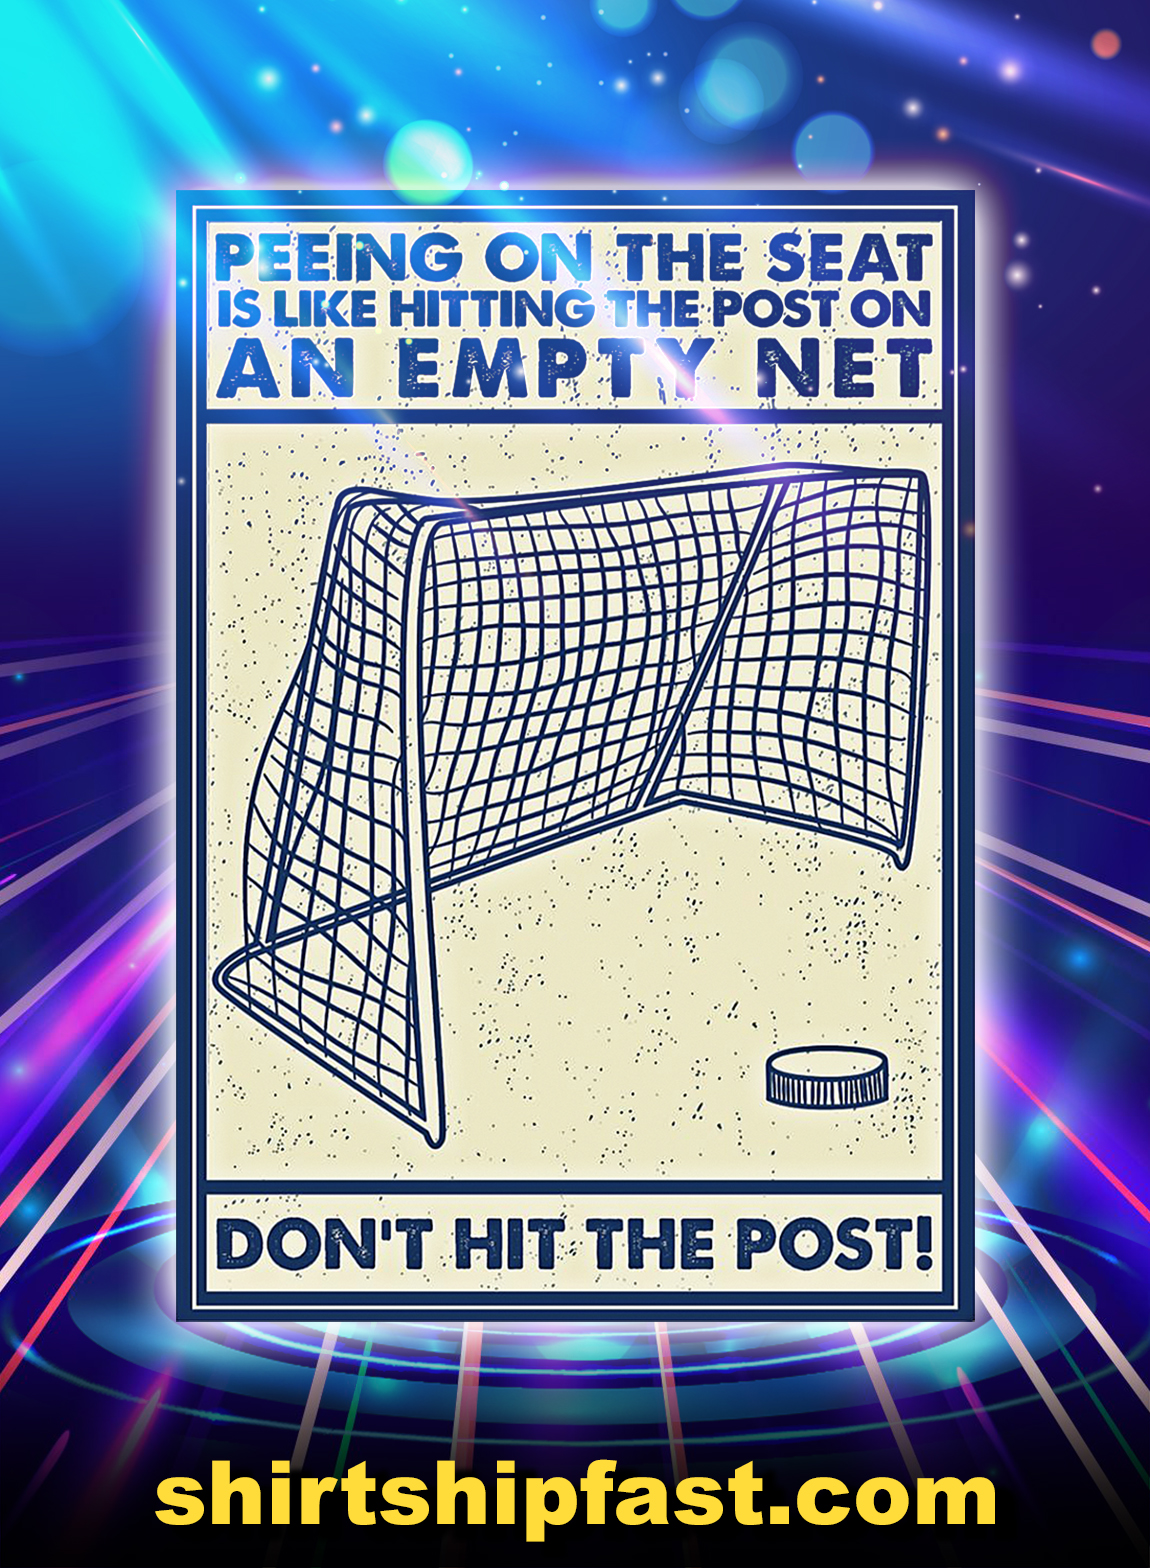 Retro Hockey peeing on the seat is like hitting the post on an empty net poster - A2